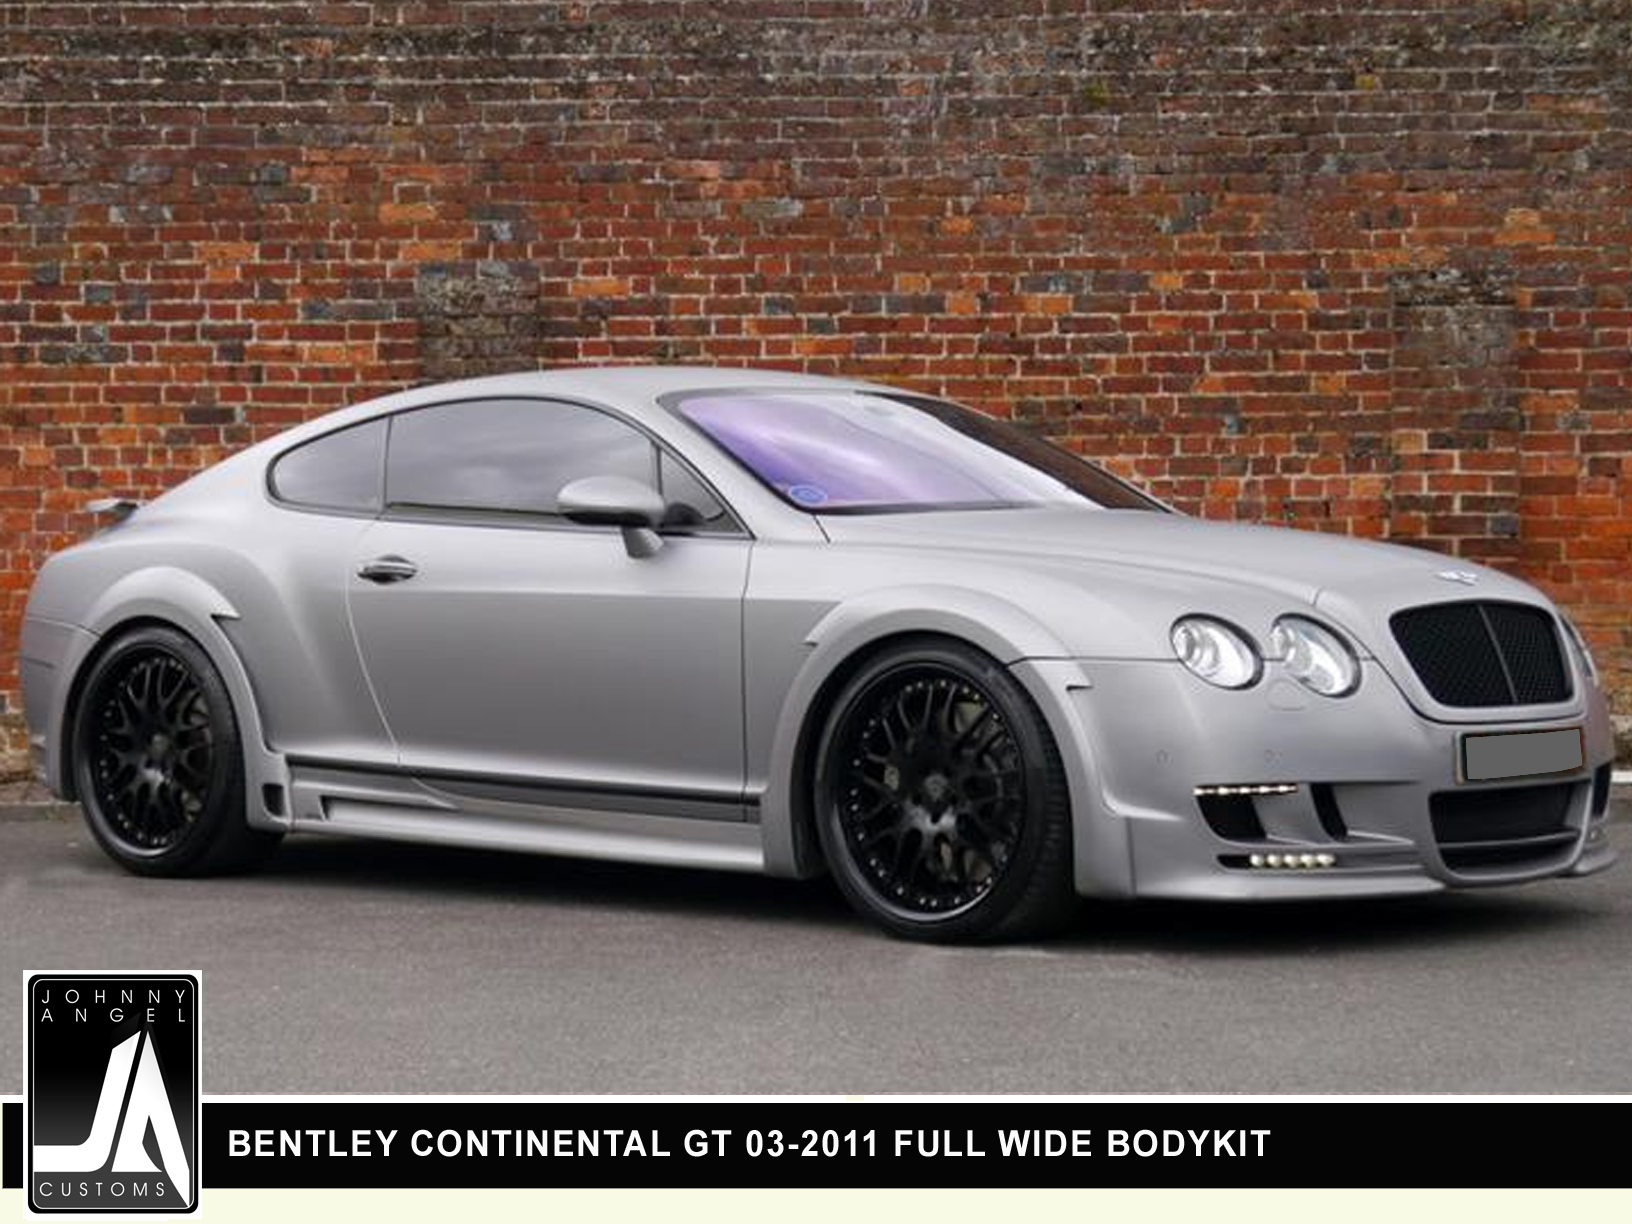 BENTLEY CONTINENTAL GT 03-2011 FULL WIDE BODYKIT  By Johnny Angel Customs pic 4